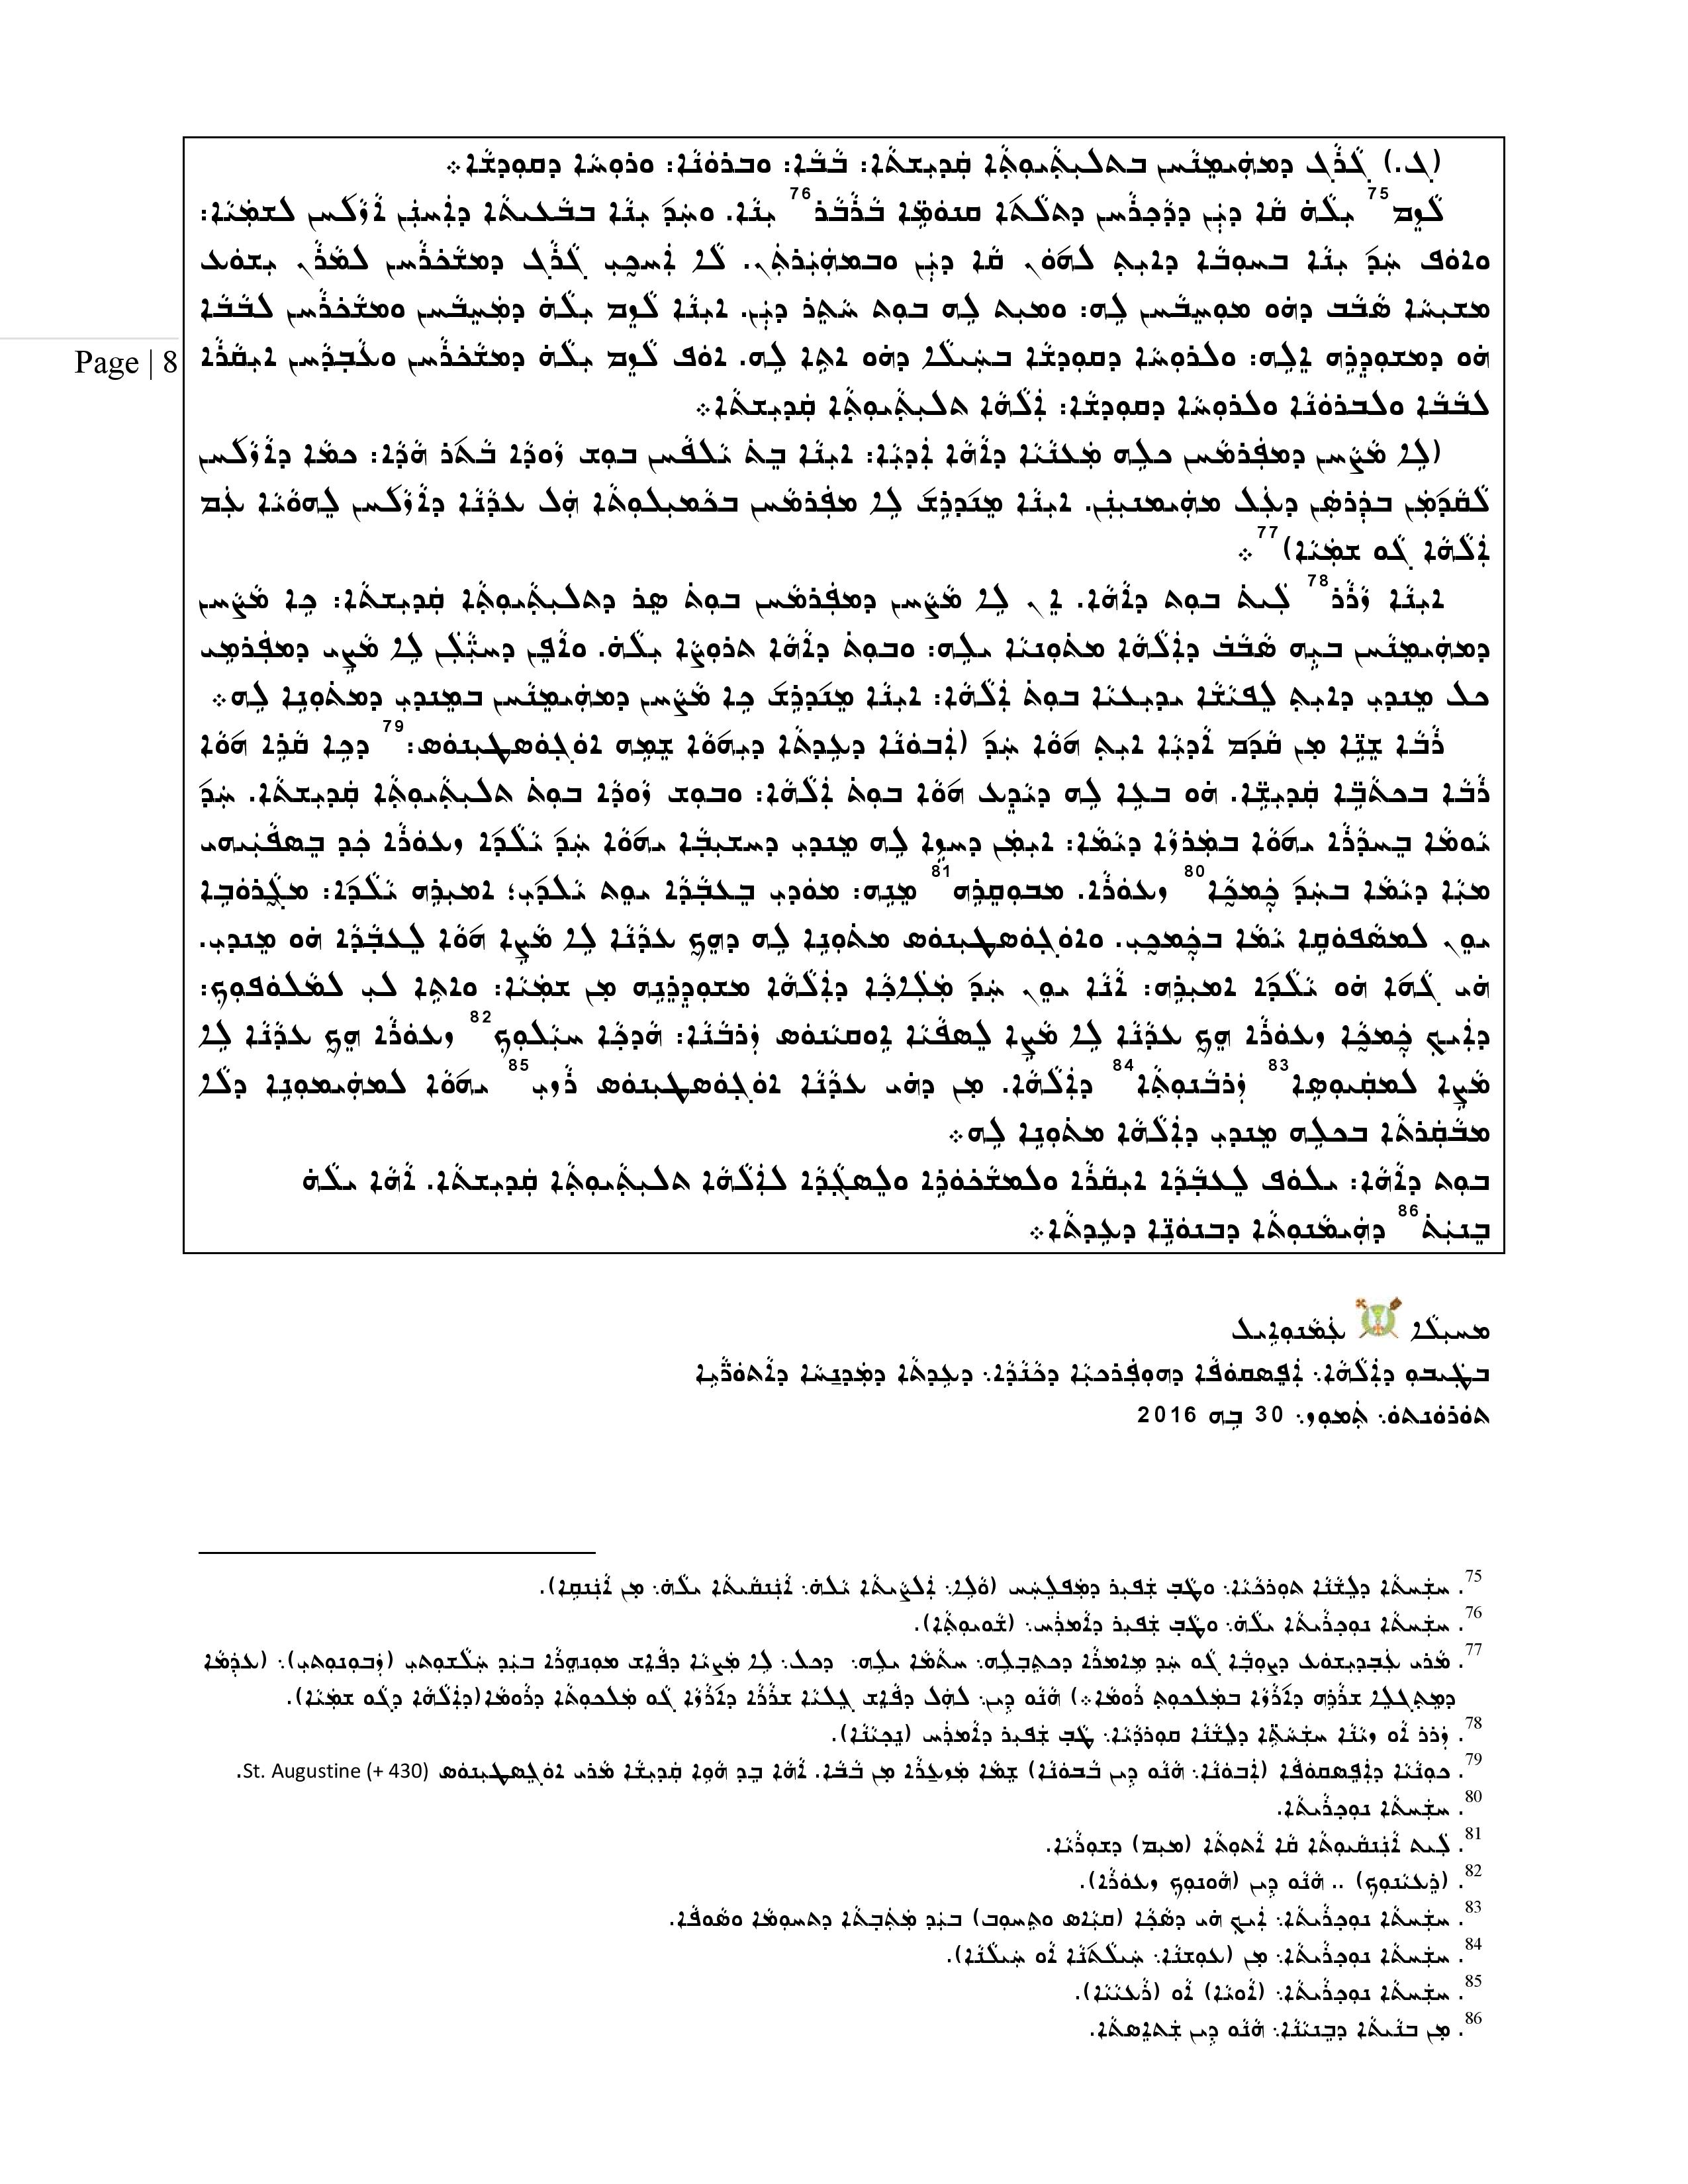 16-07-30-page-008